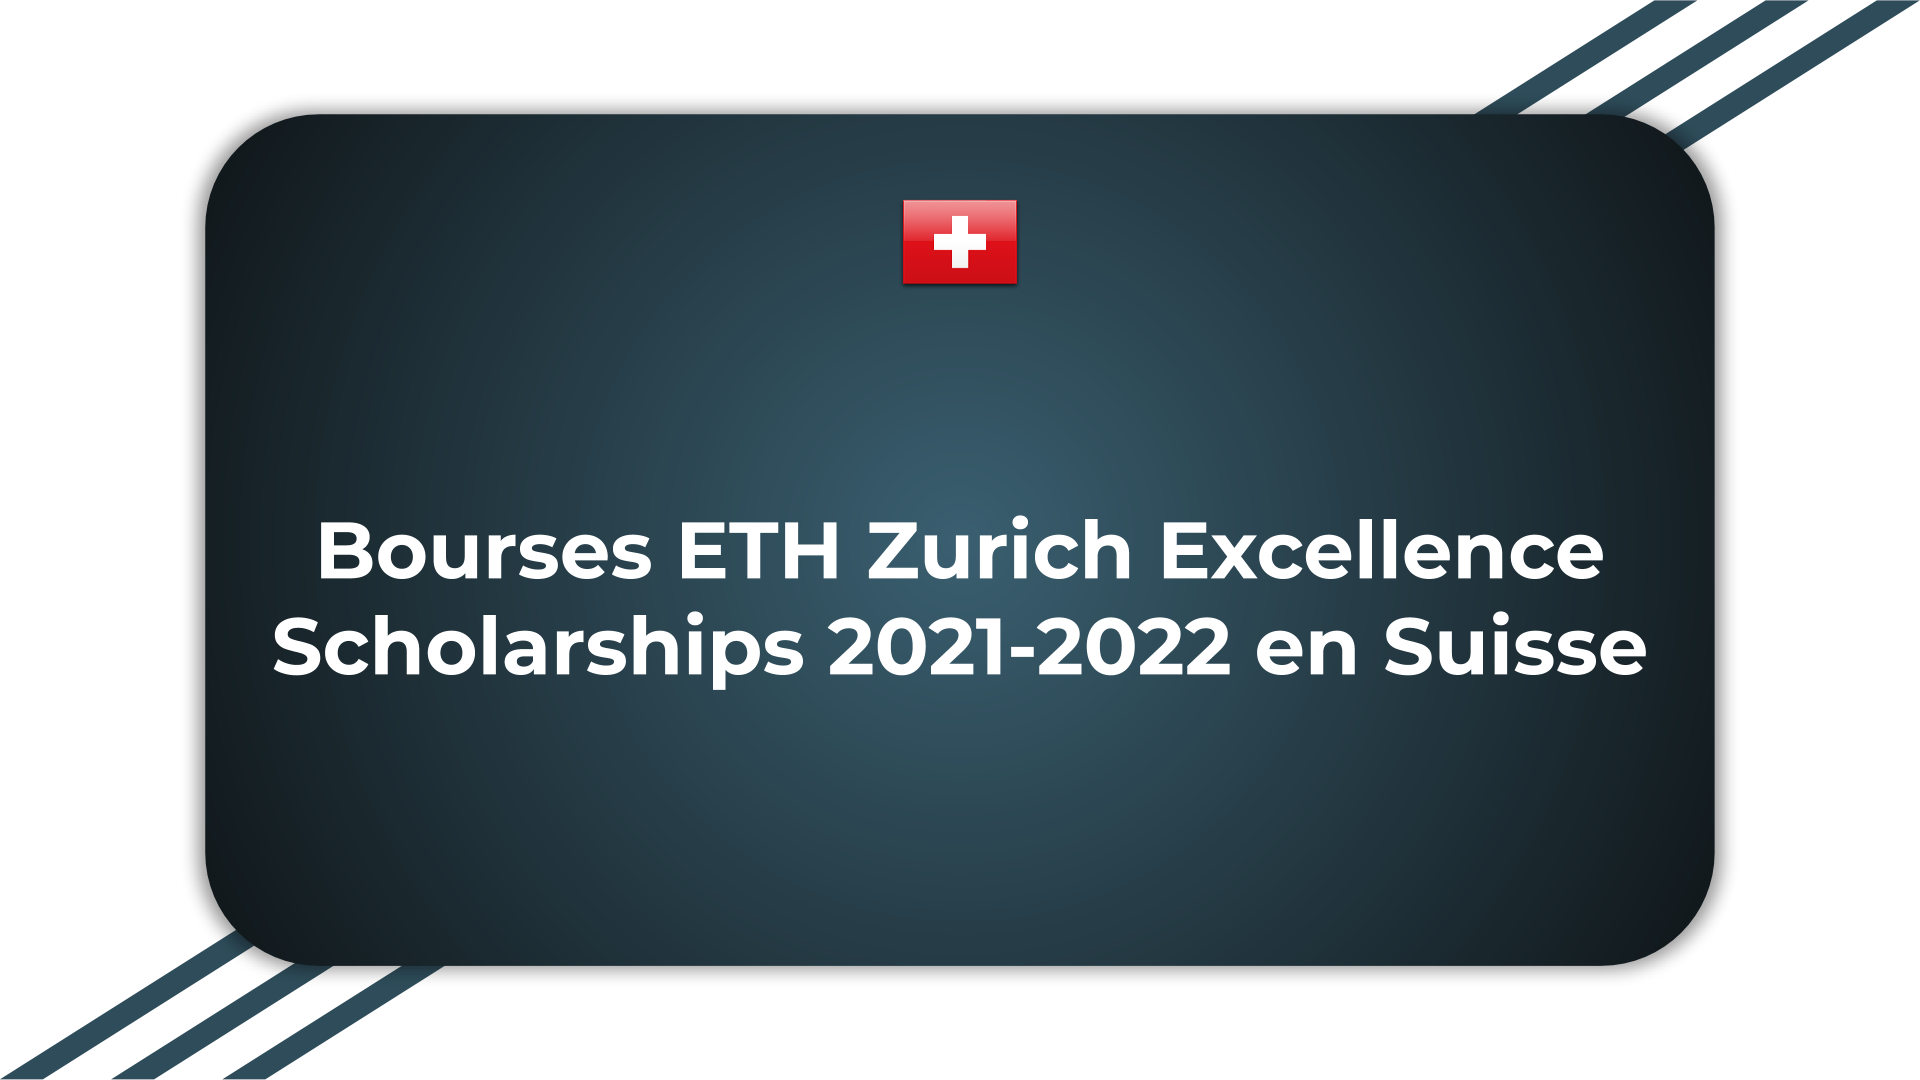 Bourses ETH Zurich Excellence Scholarships